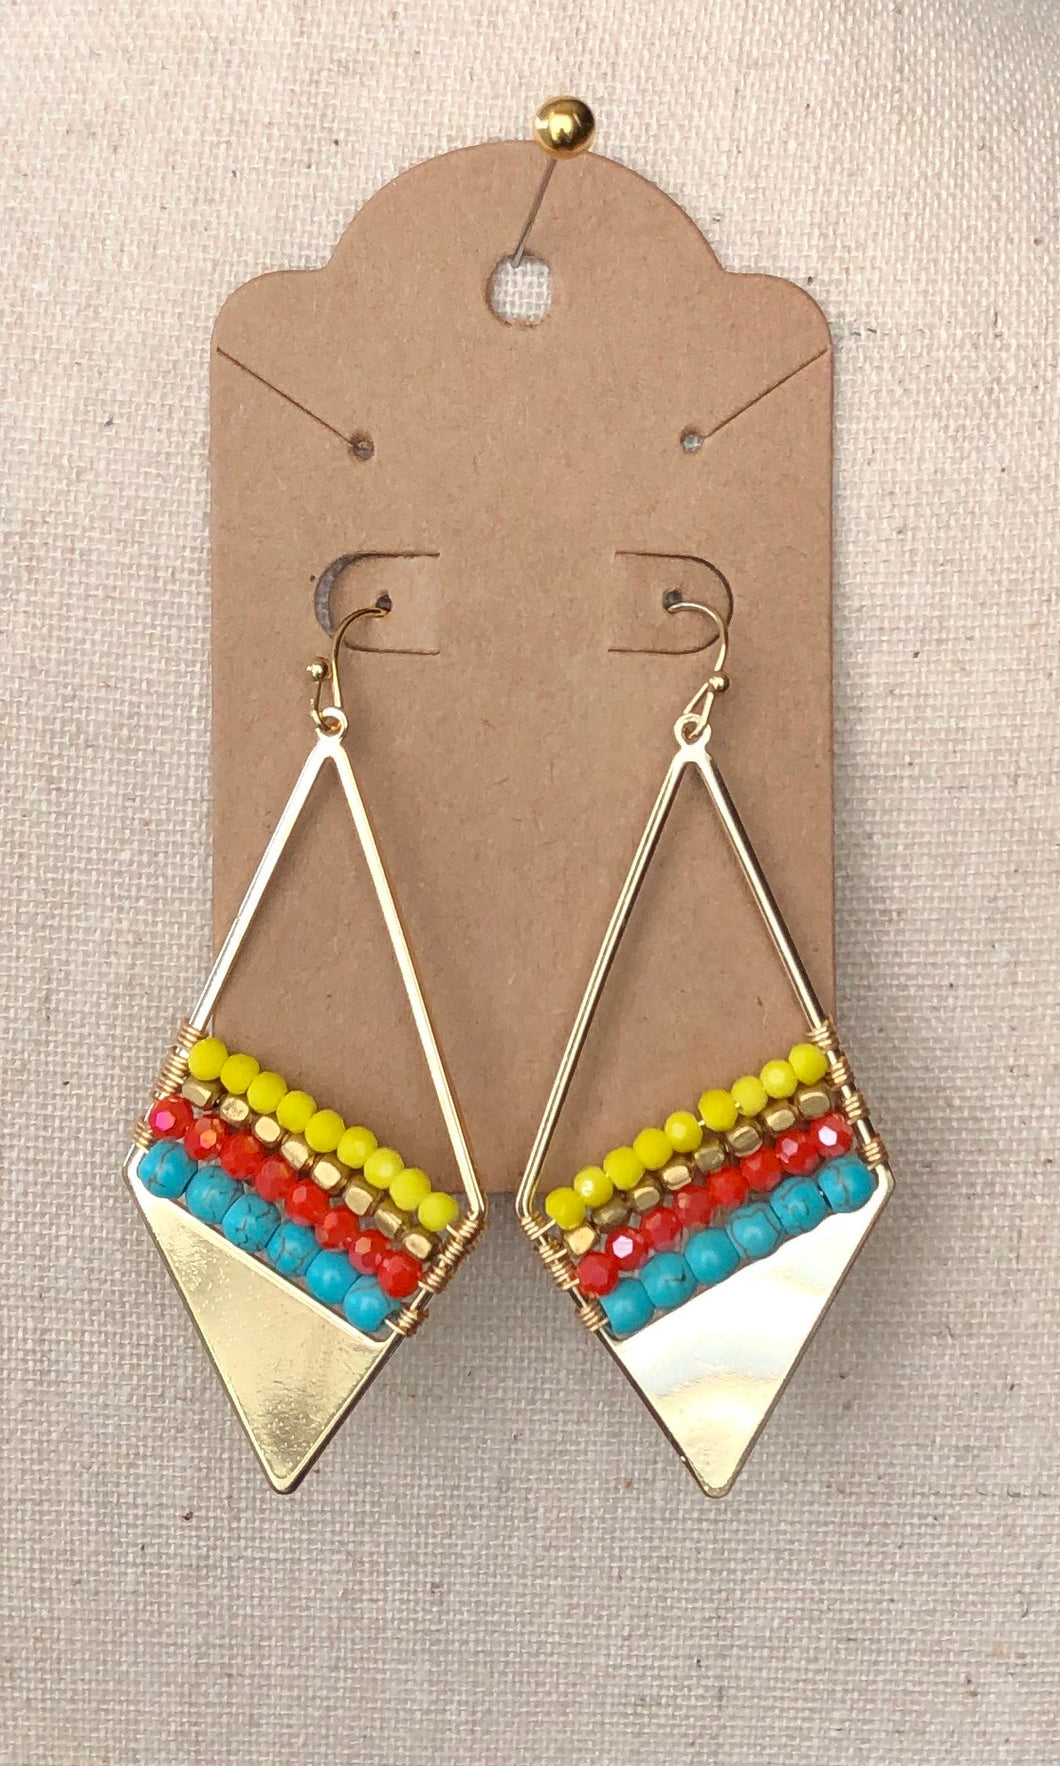 Gold/Yellow/Turquoise/Red Dangle Earrings